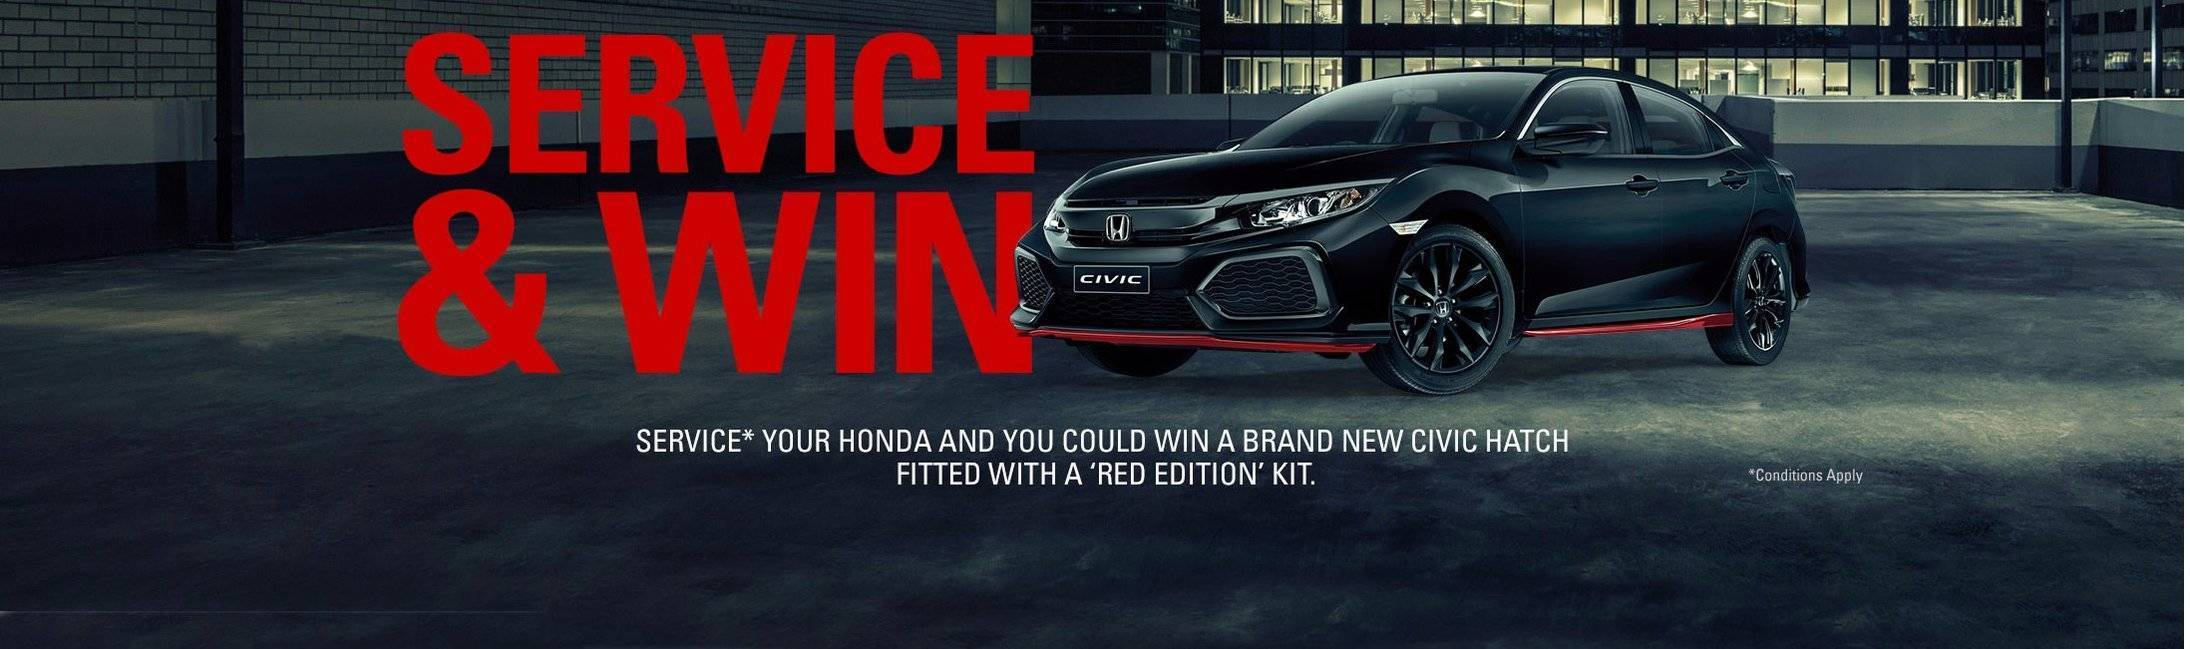 Service your Honda and Win!